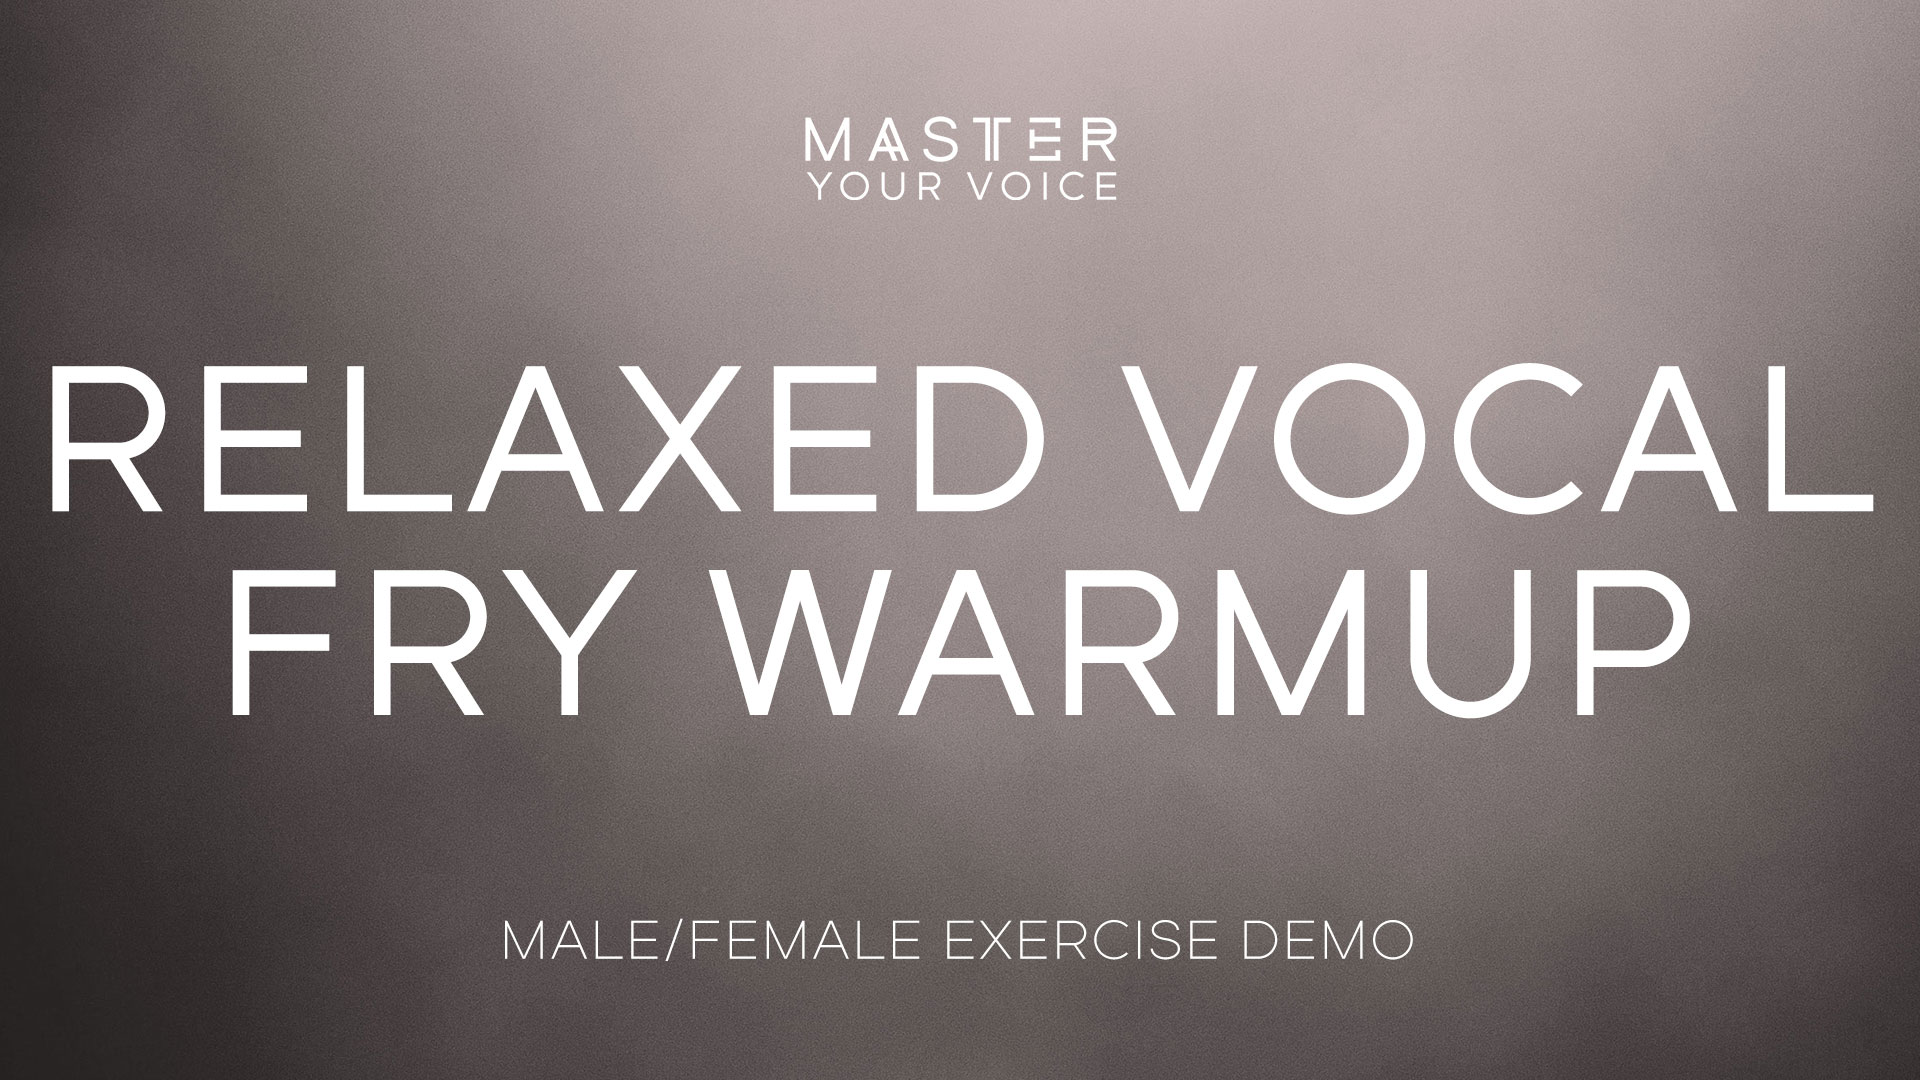 Relaxed Vocal Fry Warmup Exercise Demo